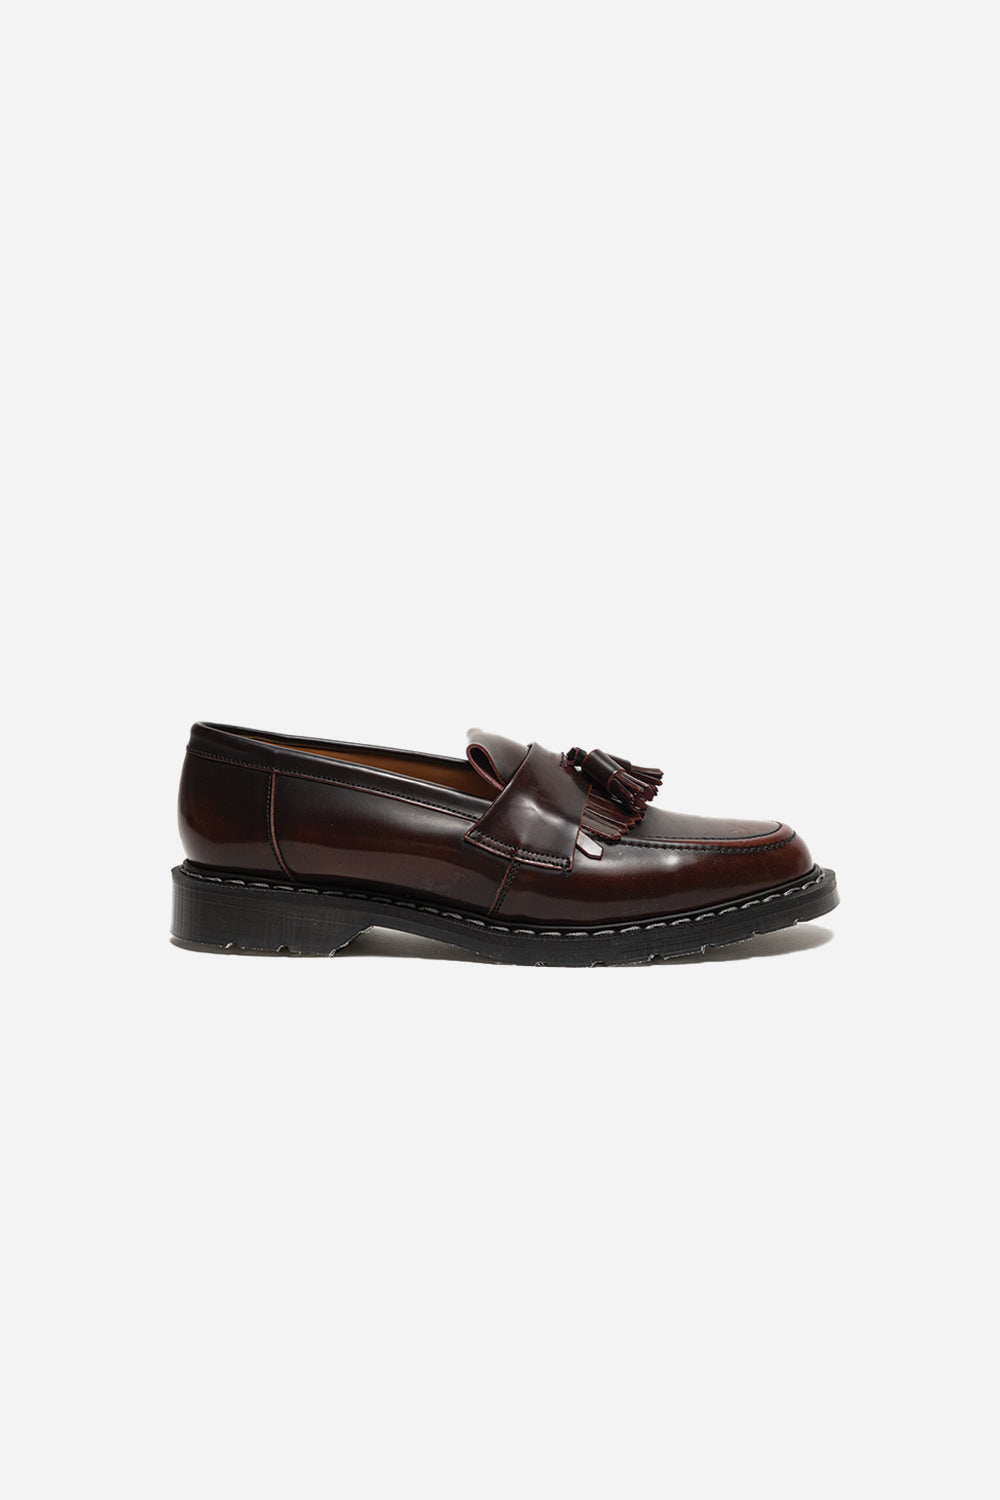 solovair-tassel-loafer-burgundy-rub-off-hi-shine